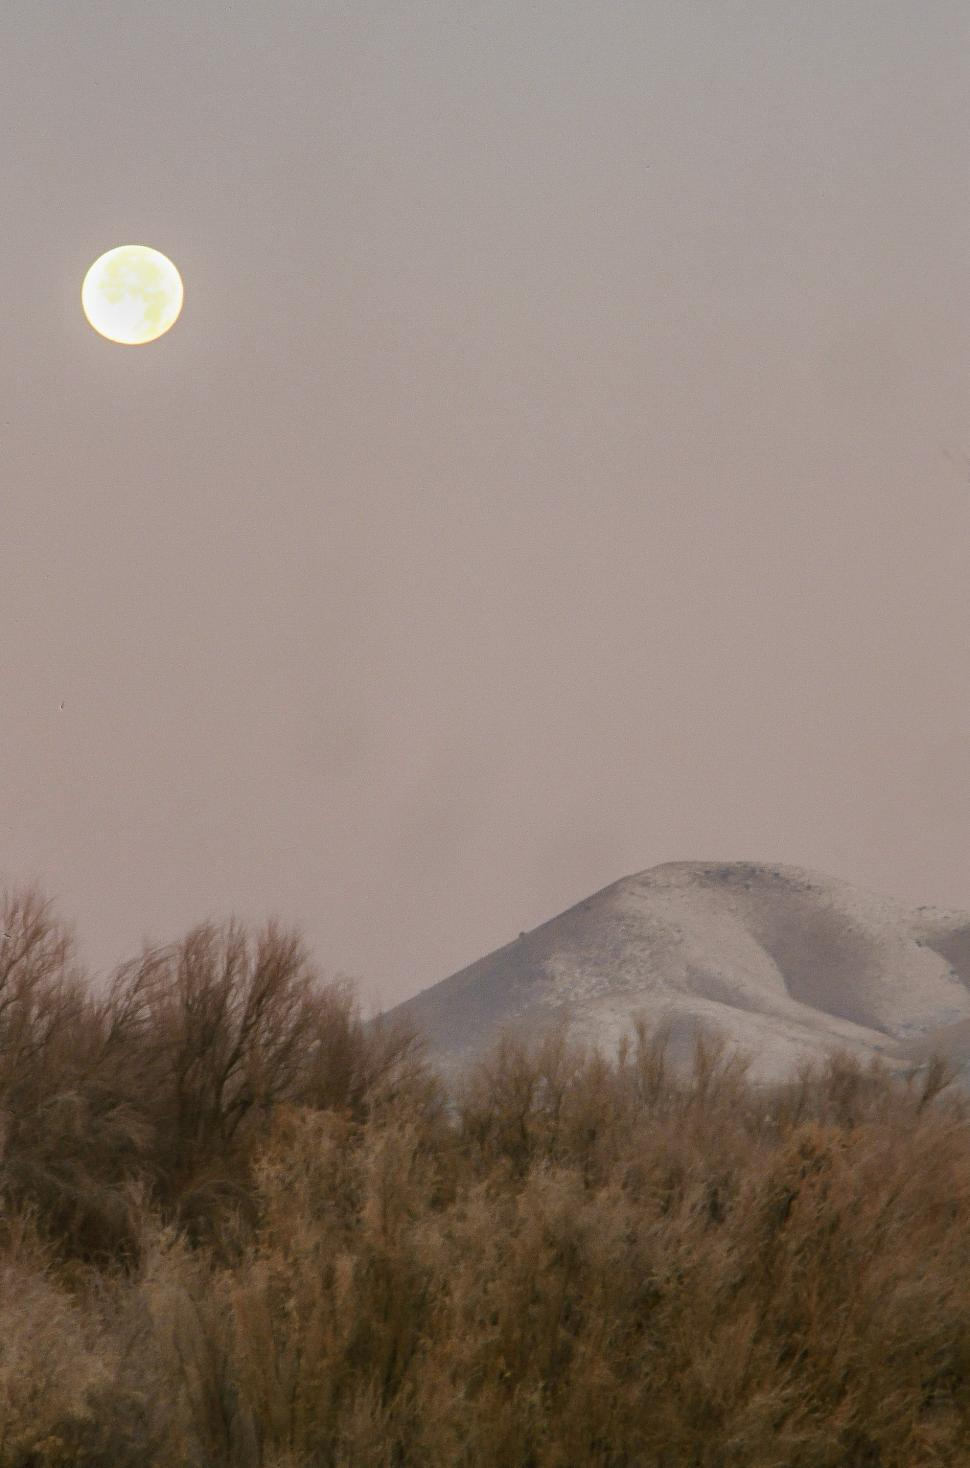 Download Free Stock HD Photo of Moonset at Bosque del Apache Online